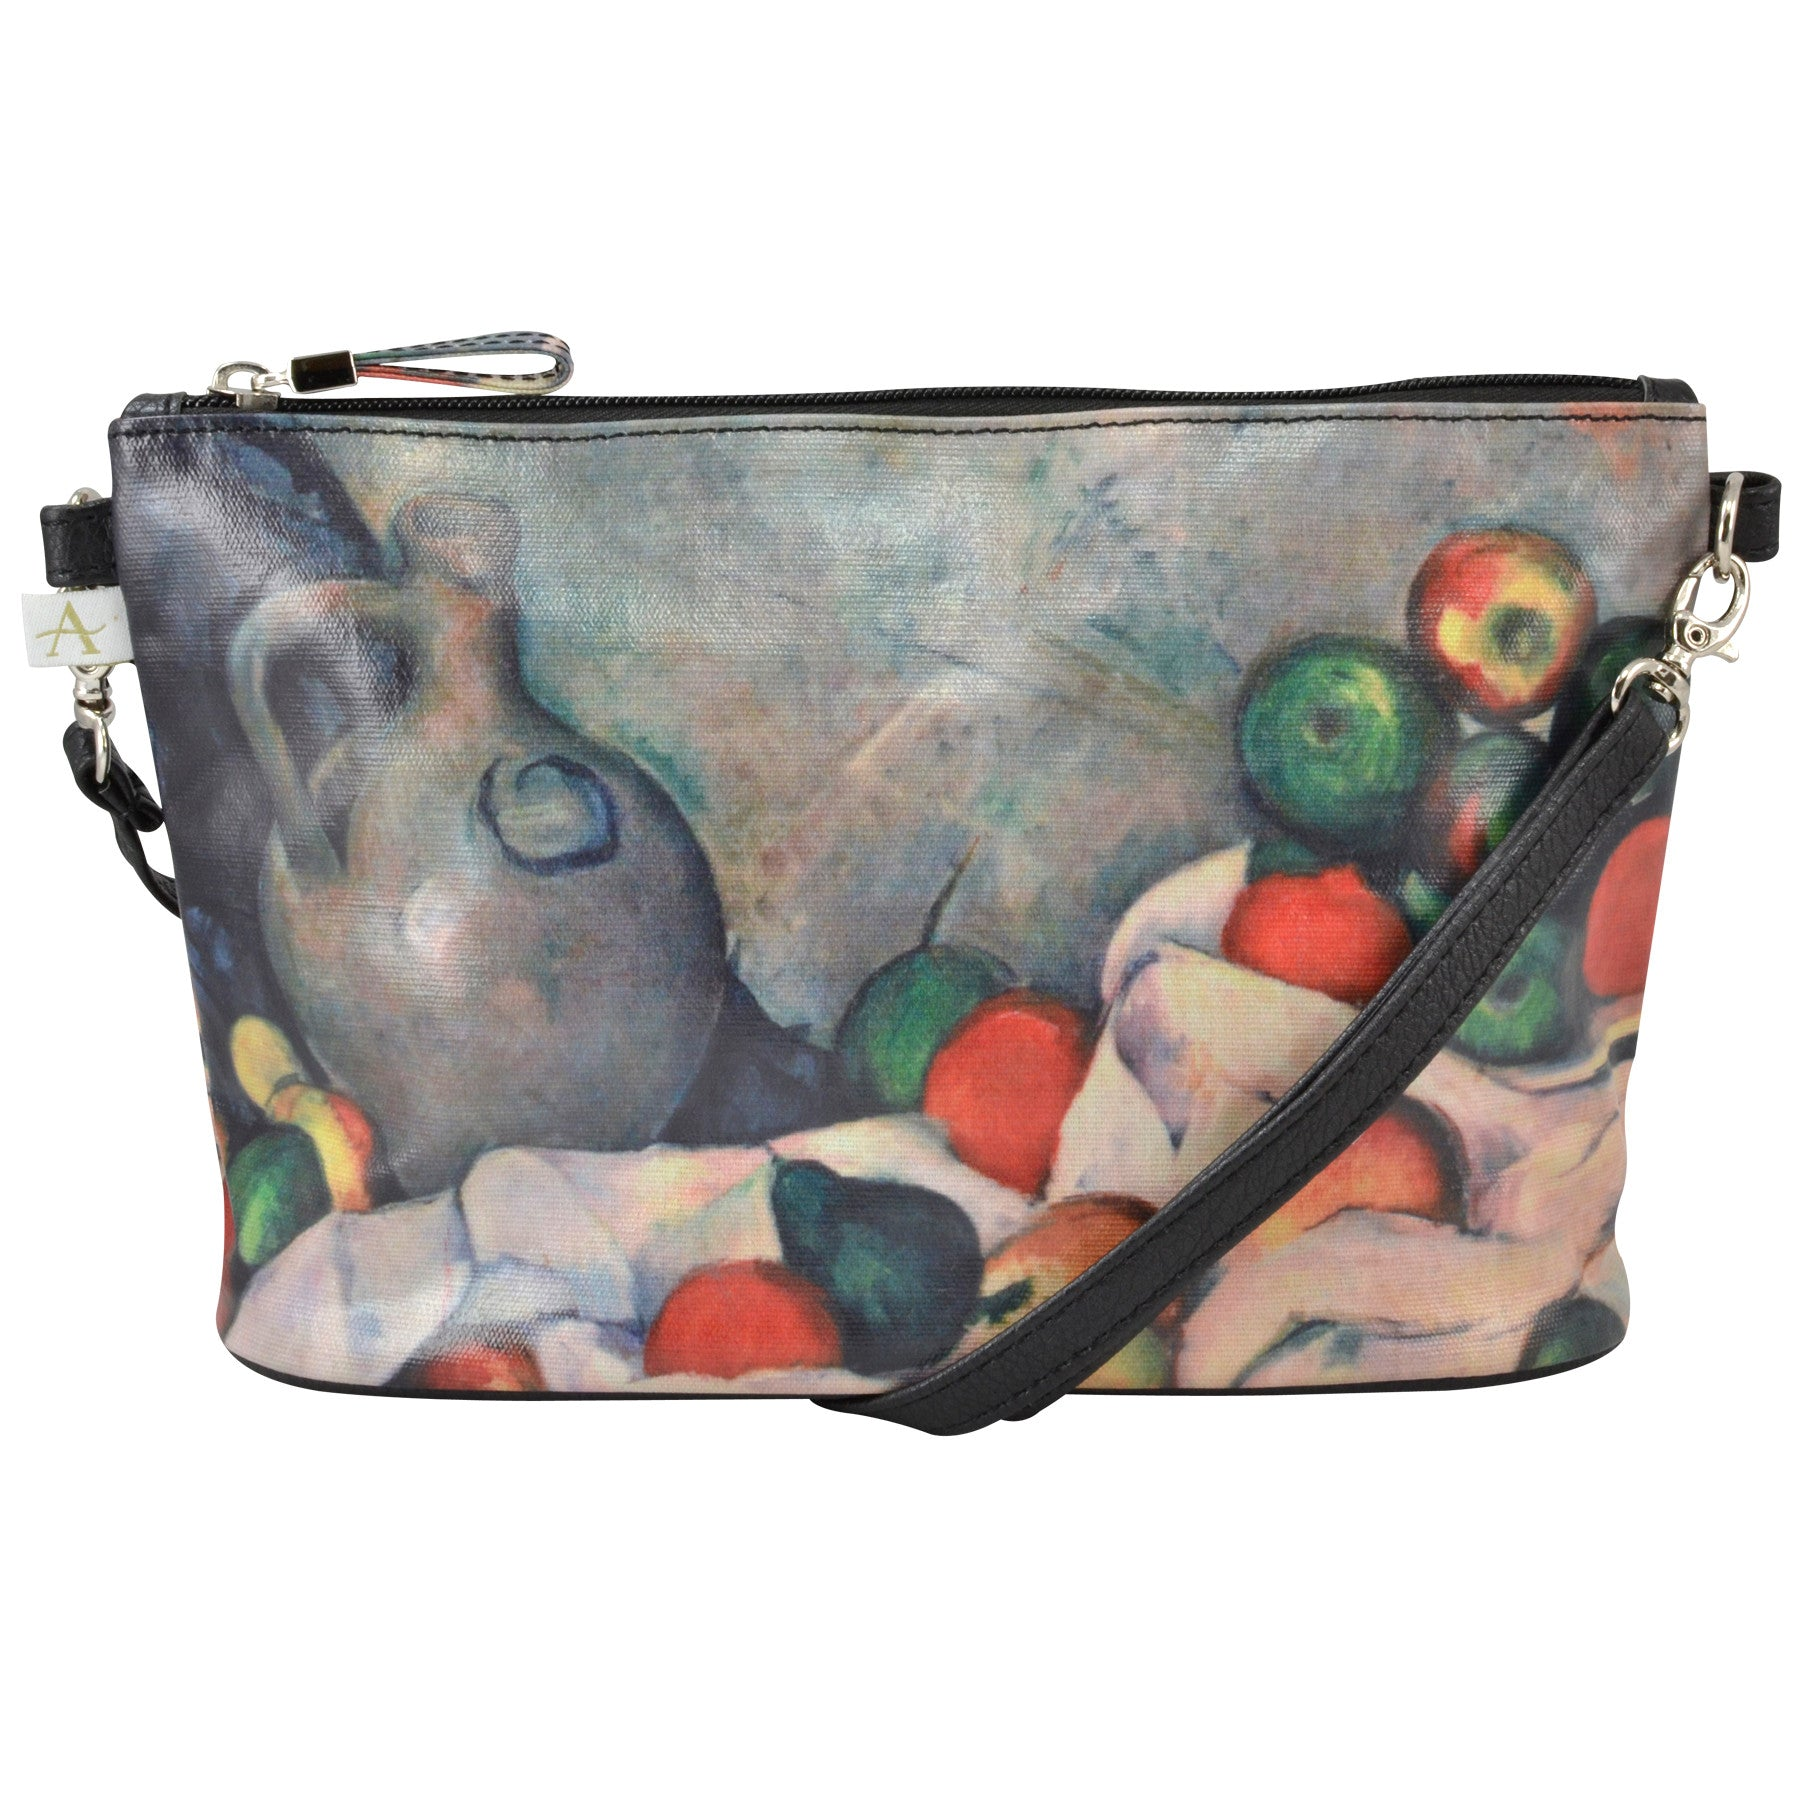 Alicia Klein small crossbody bag, Cezanne Still Life